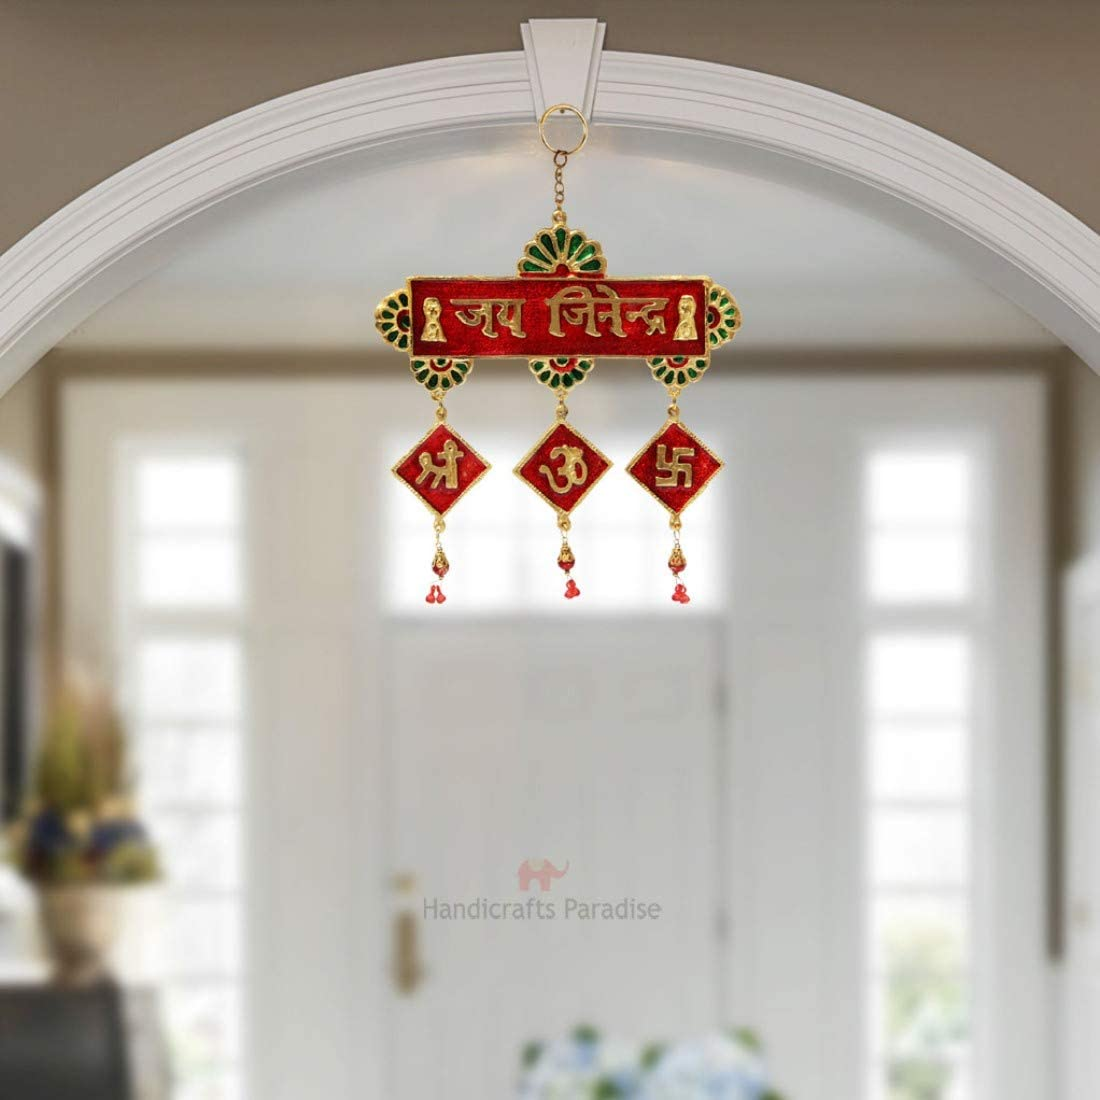 New NEW popularity HANDICRAFTS PARADISE Hanging With Engraved Jinendra Jai